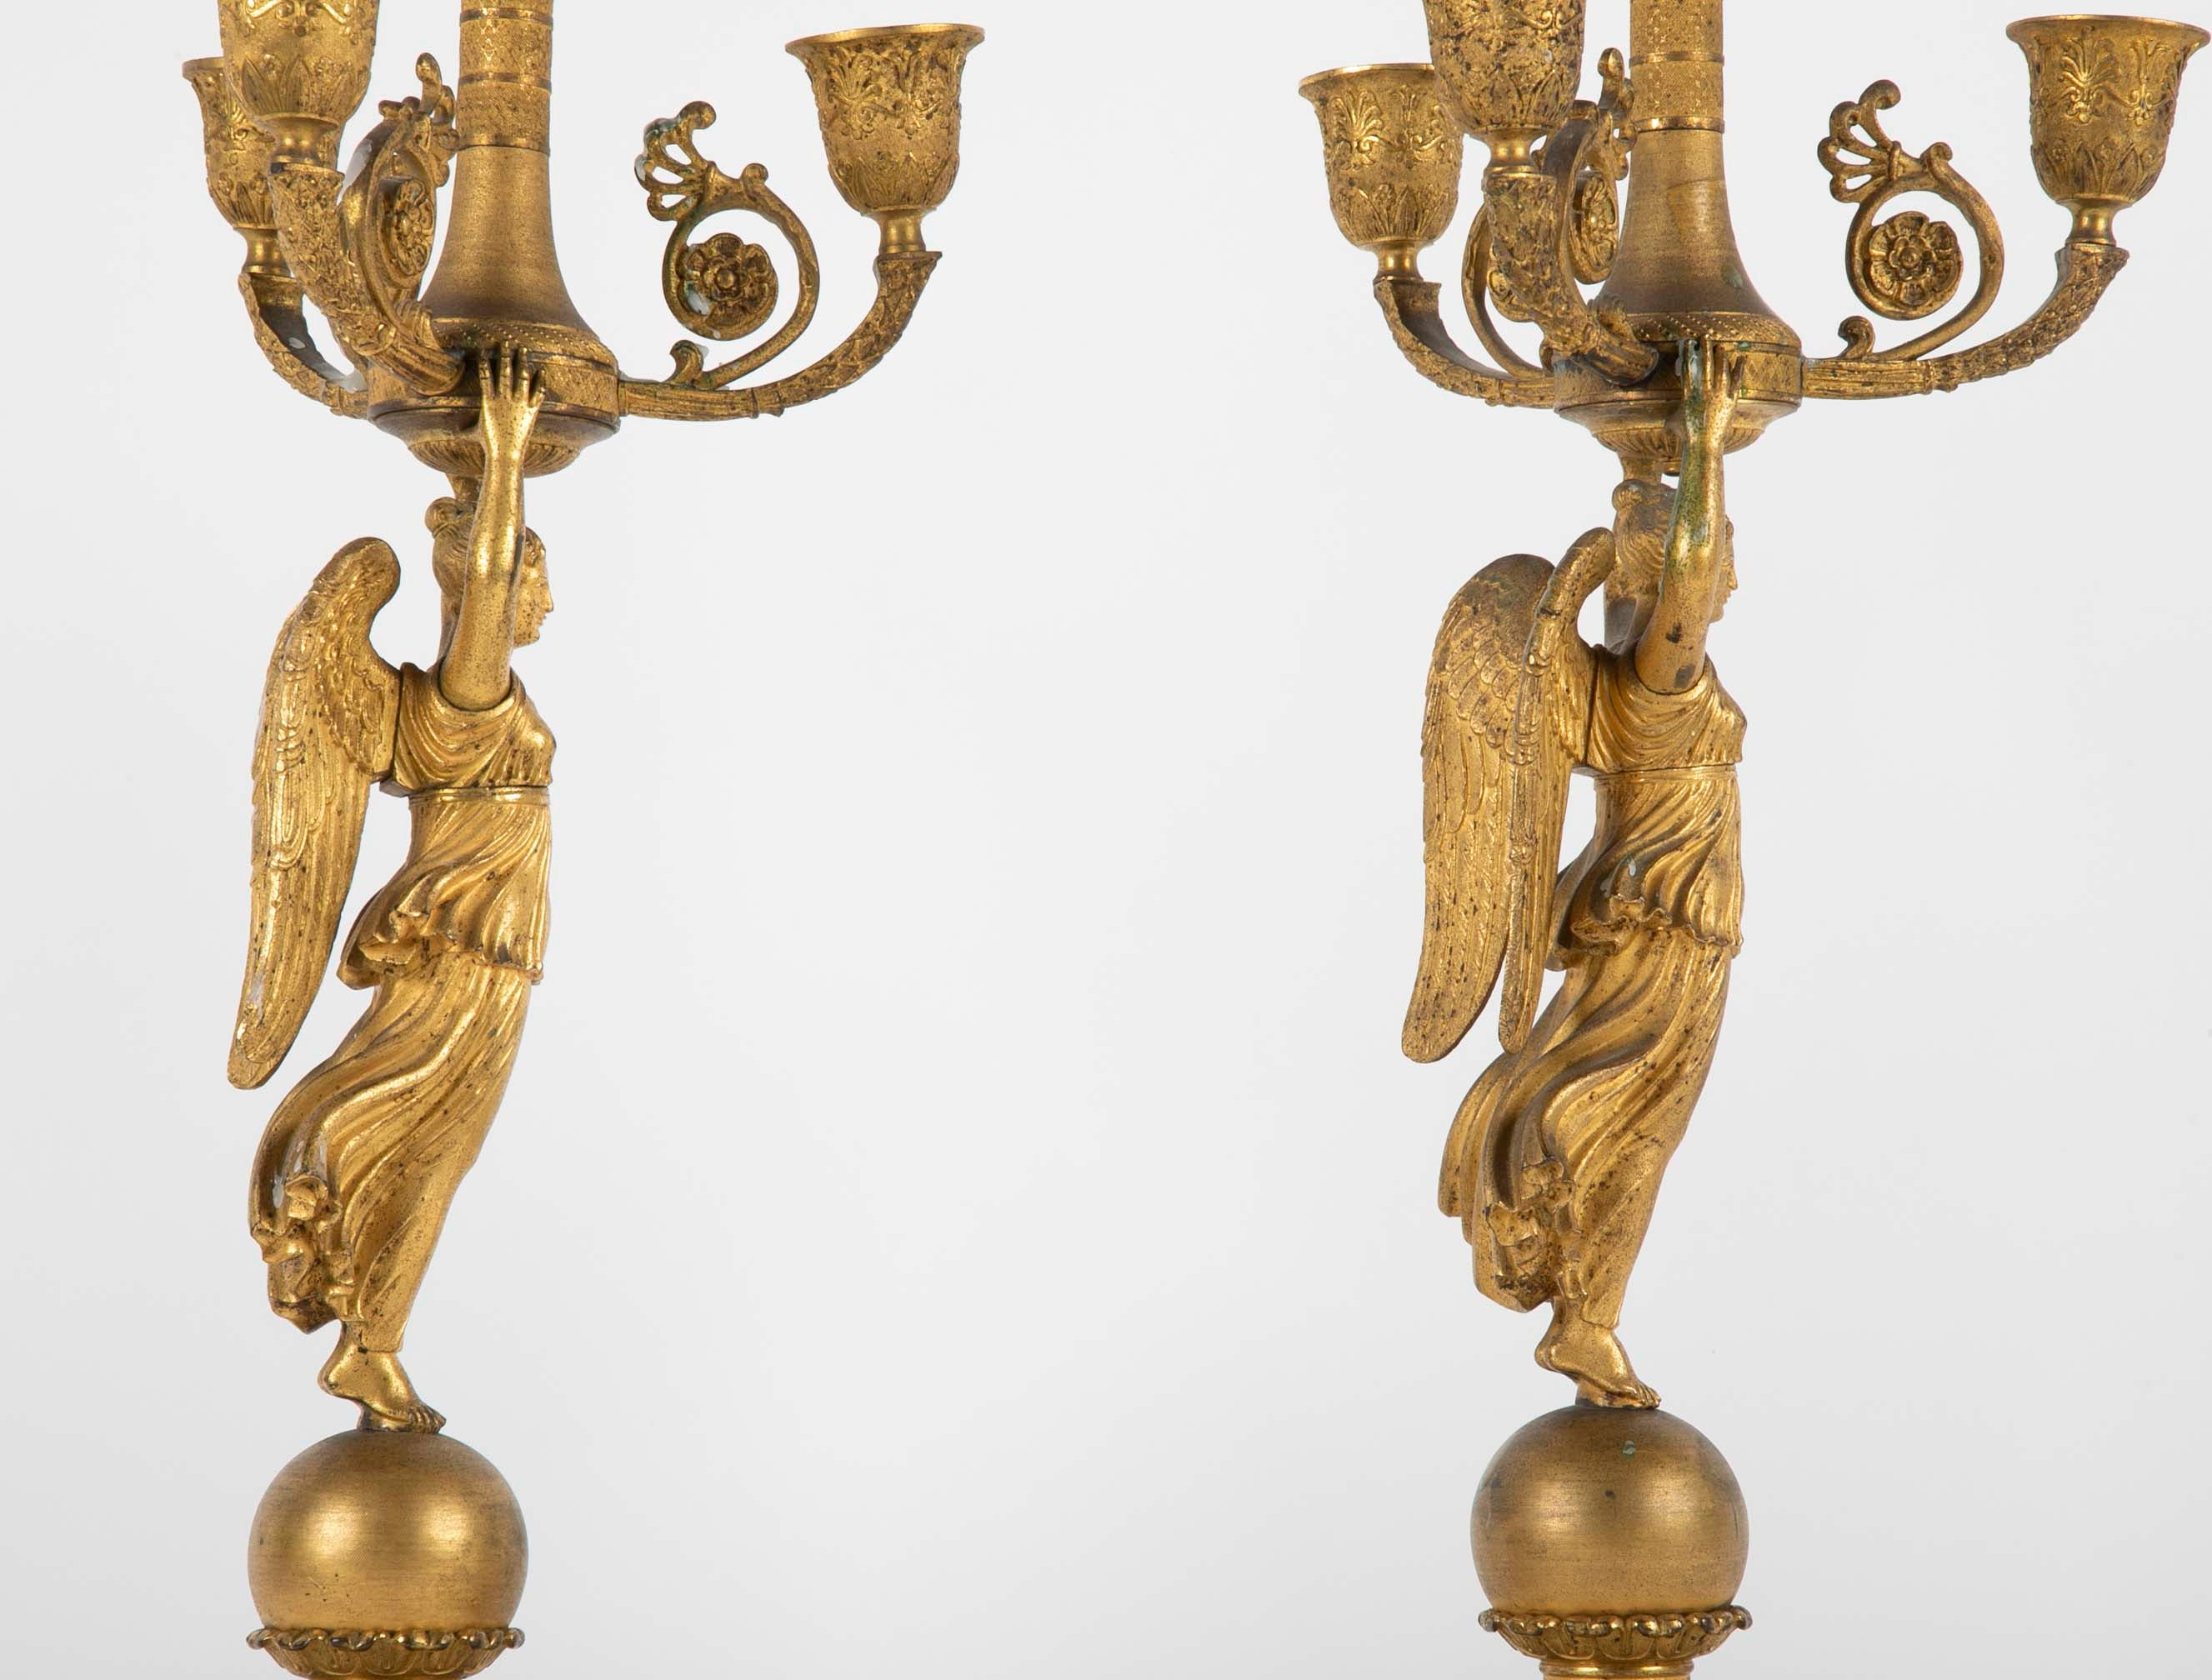 Pair of Russian Empire D'ore Bronze Candelabra with Porphyry Base